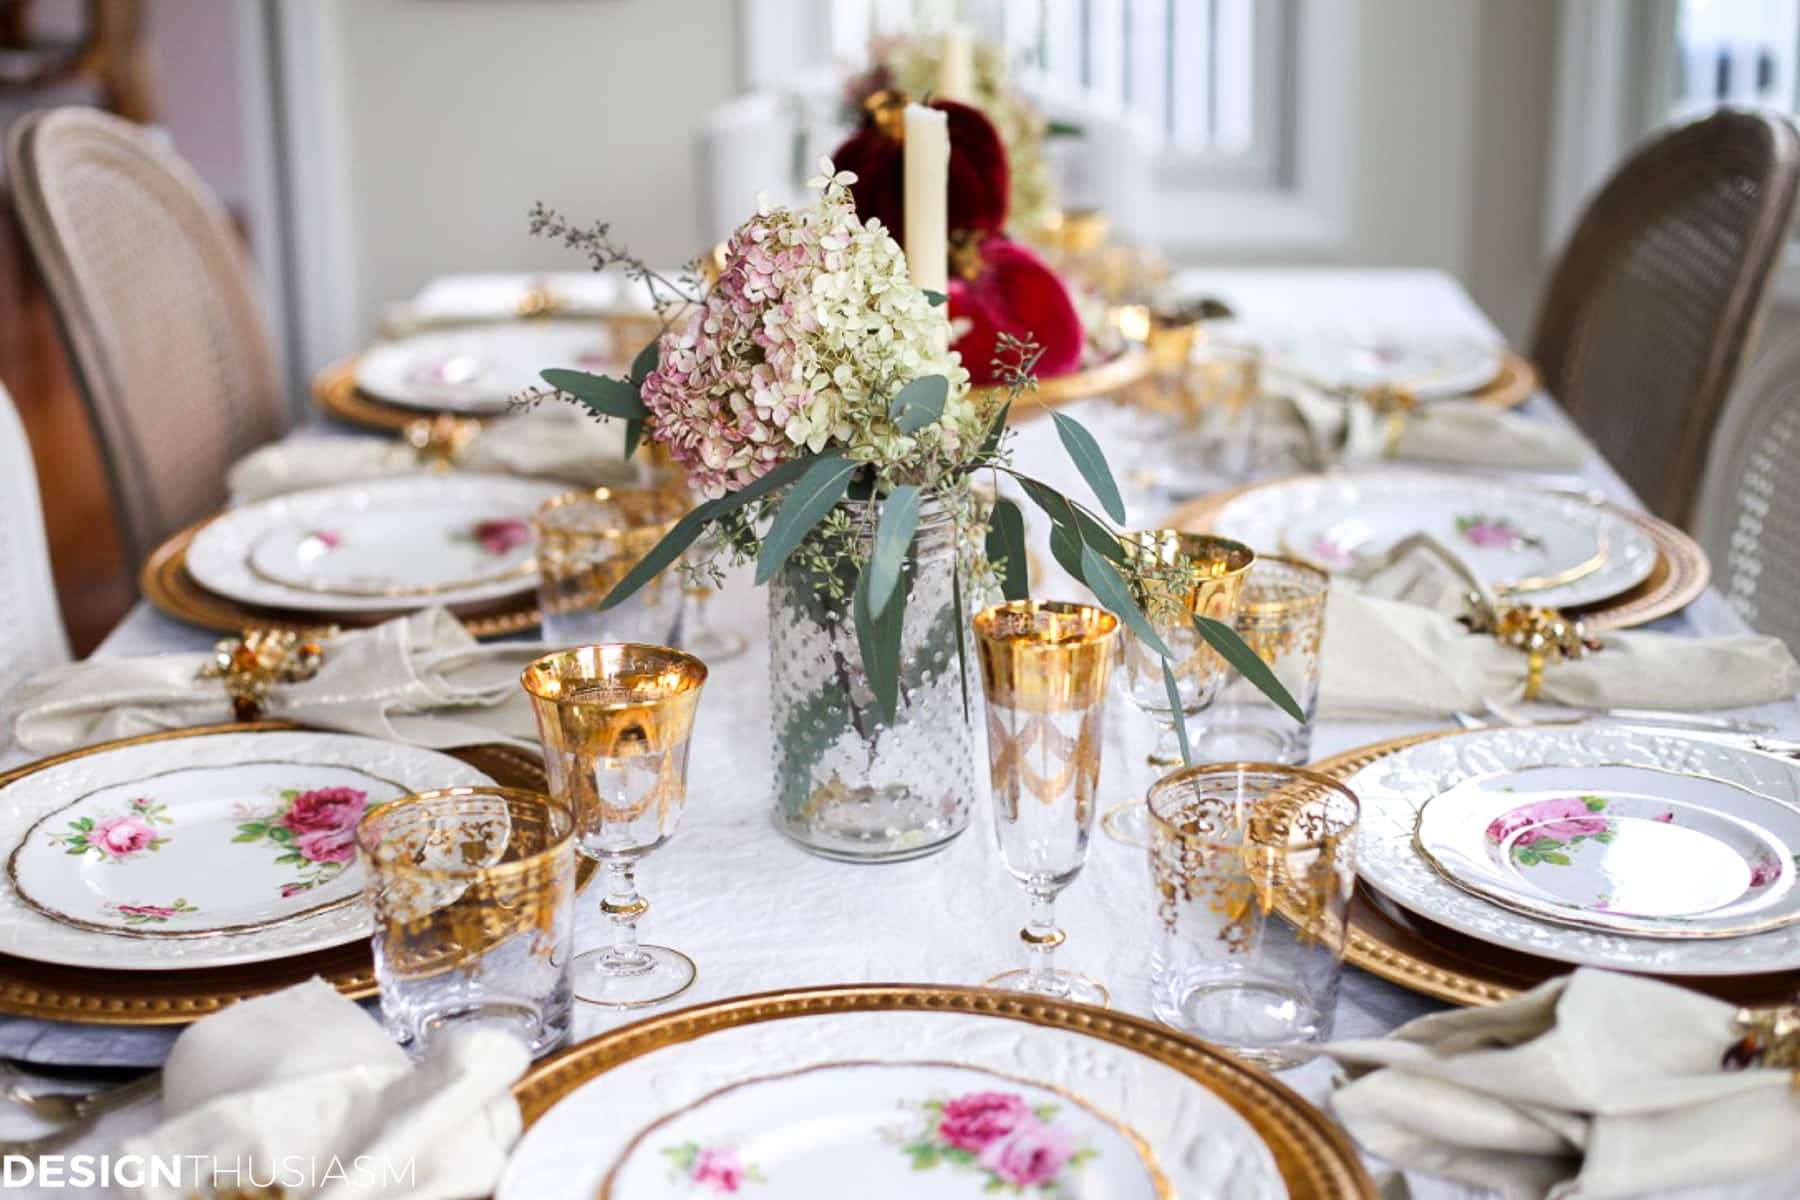 Simple dinner table setting - Creating A Simple Table Setting When You Have No Time Designthusiasm Com